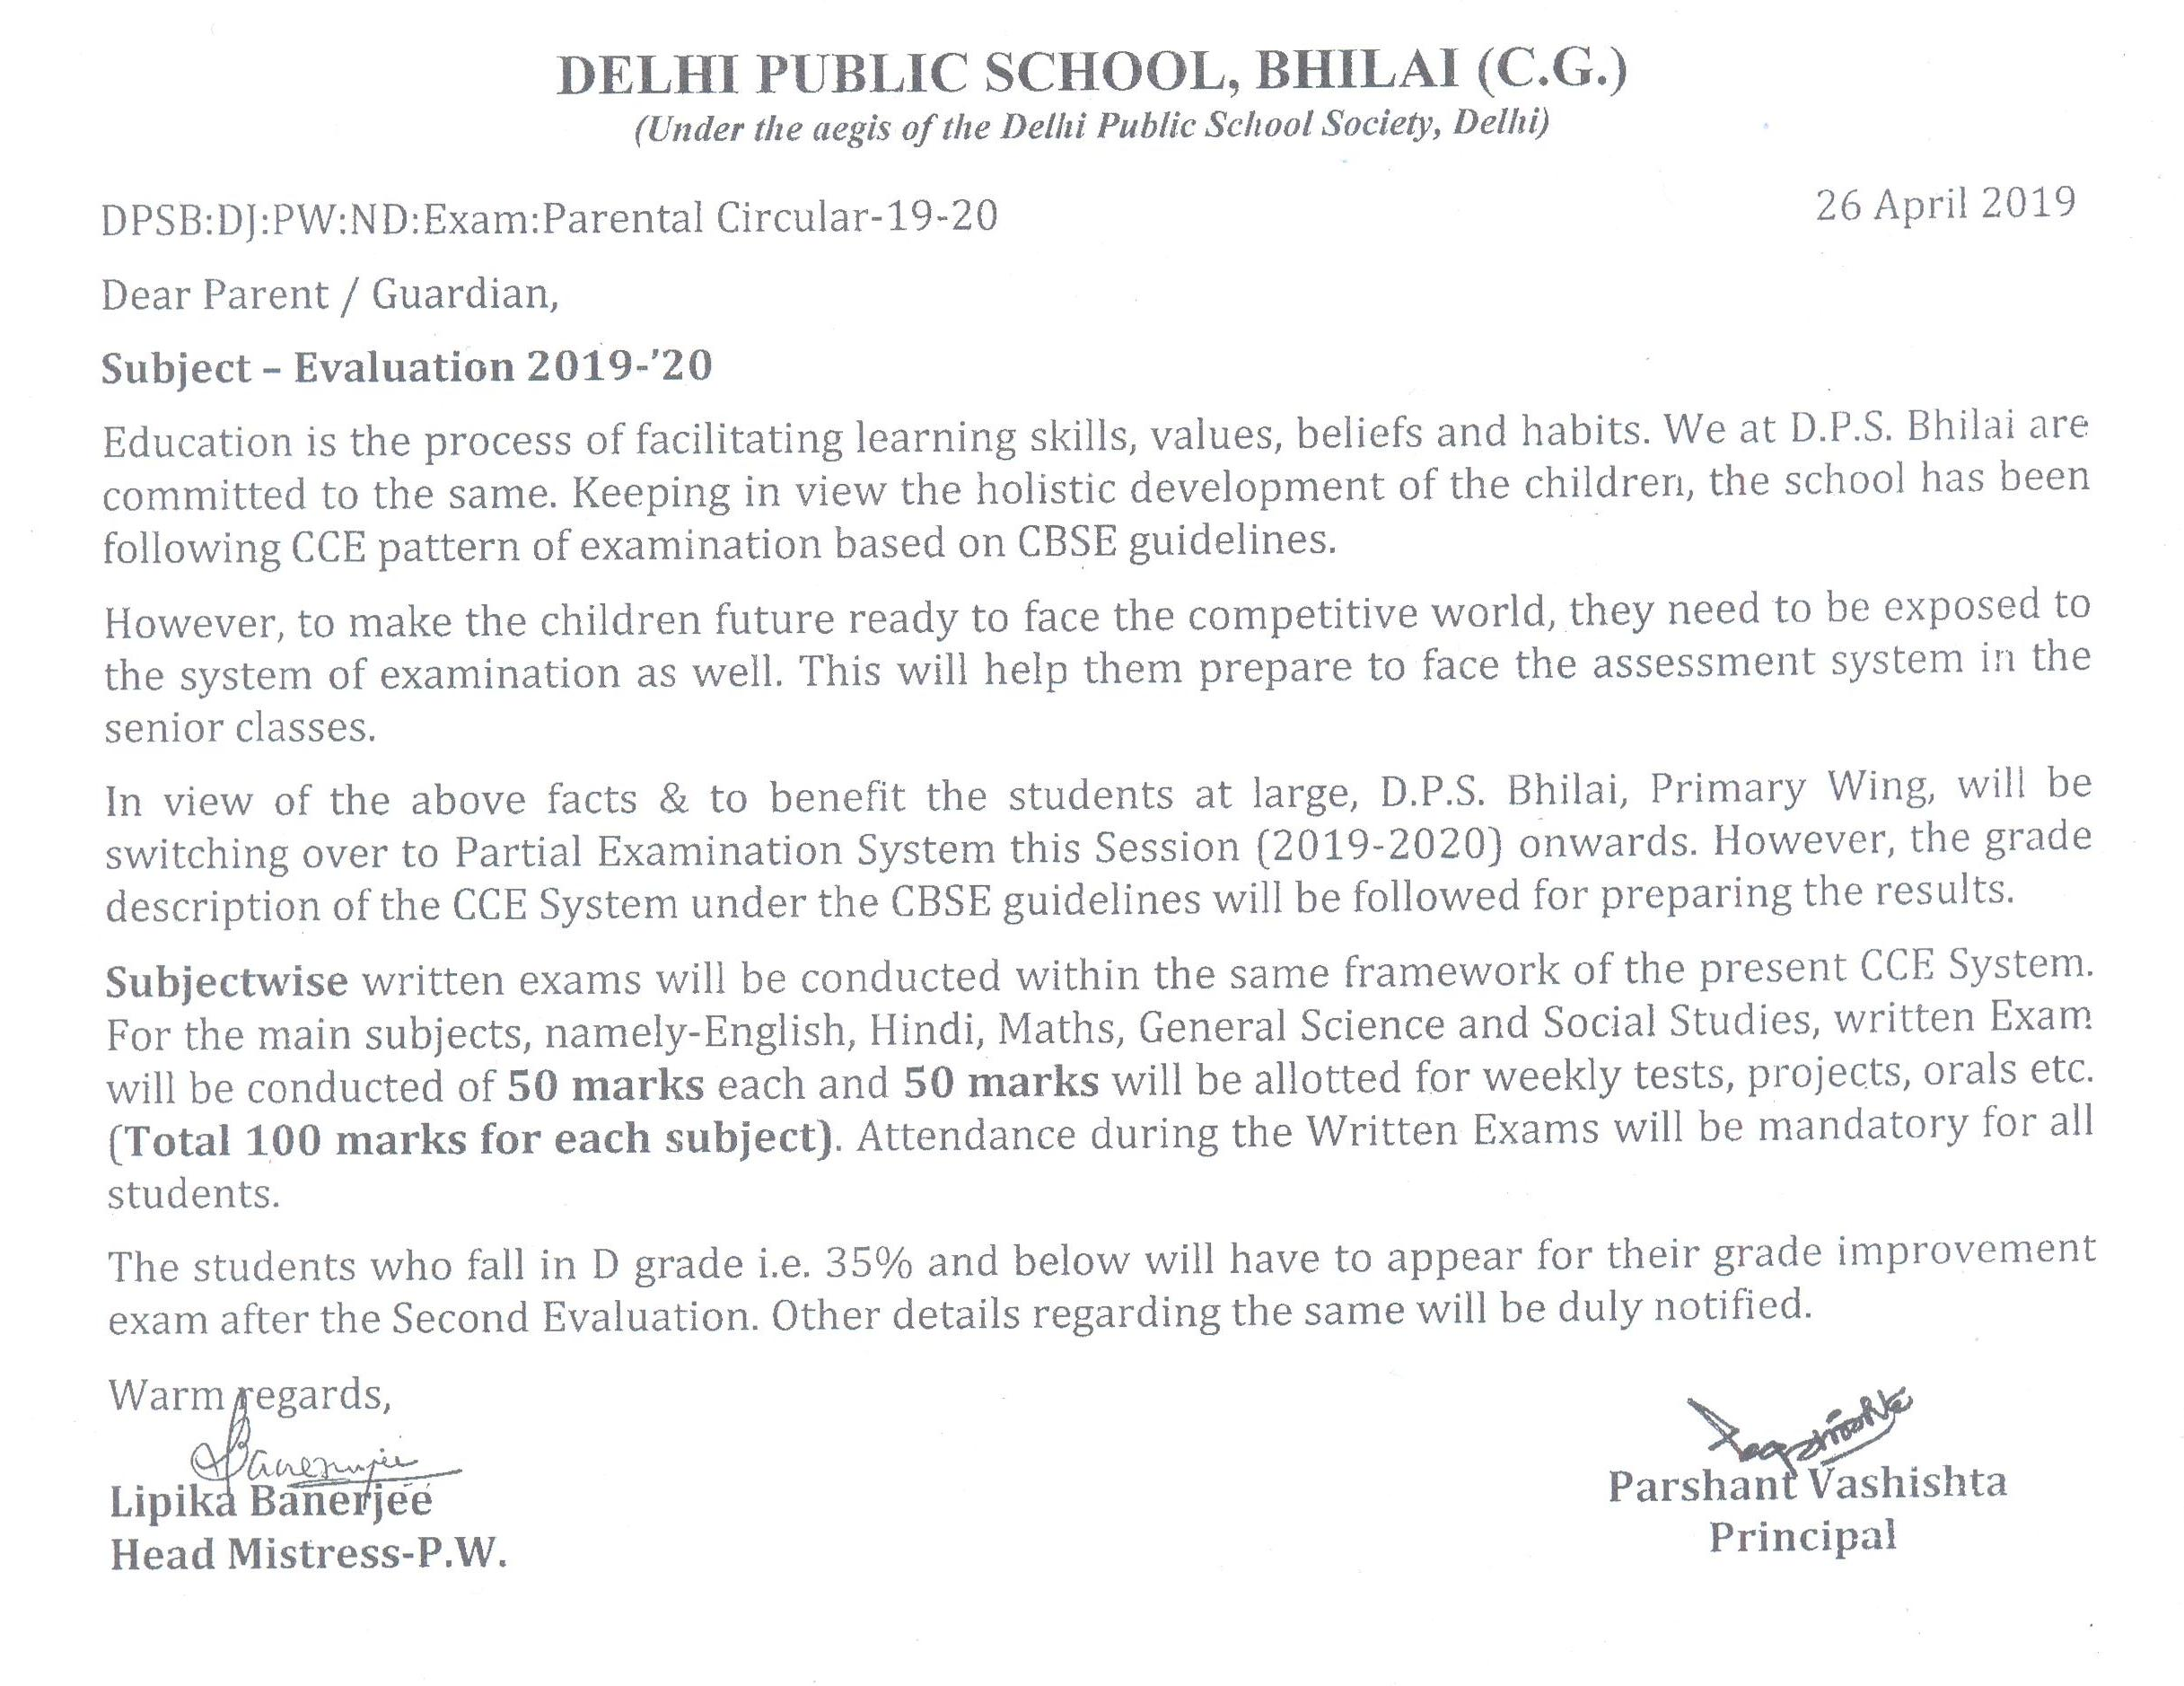 DPS Bhilai - Important Message